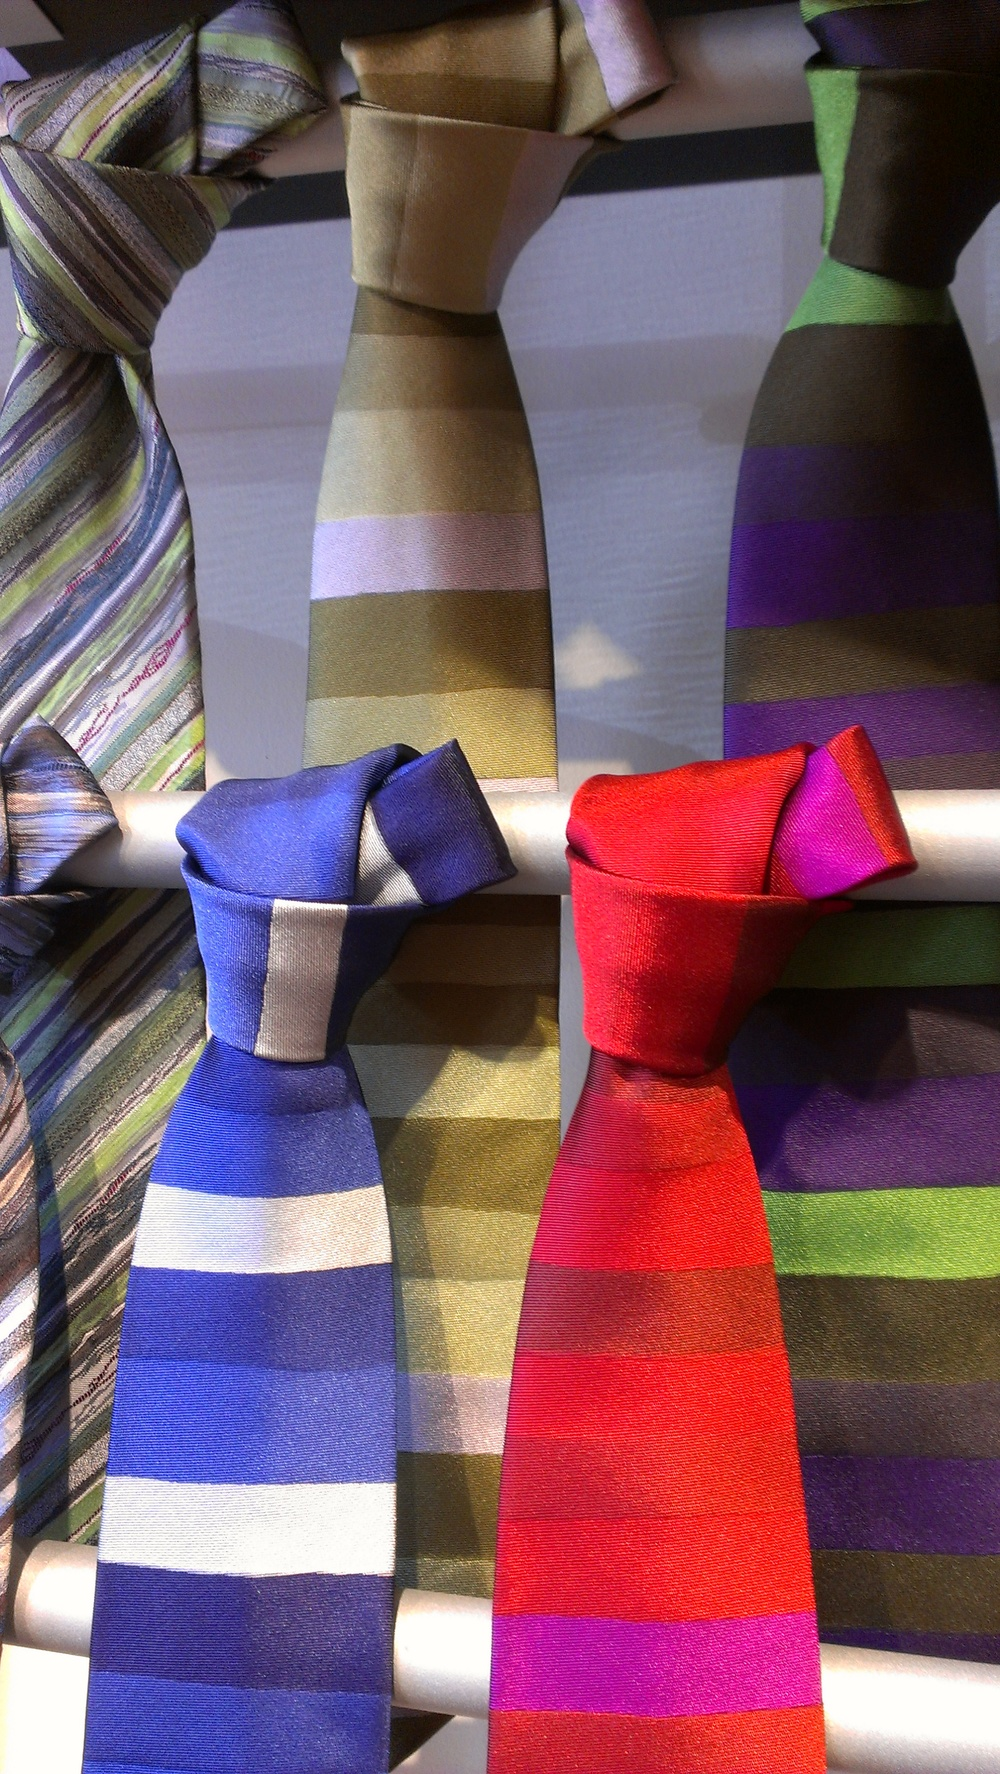 victoria-richards-striped-silk-ties-all-uk-made.jpg